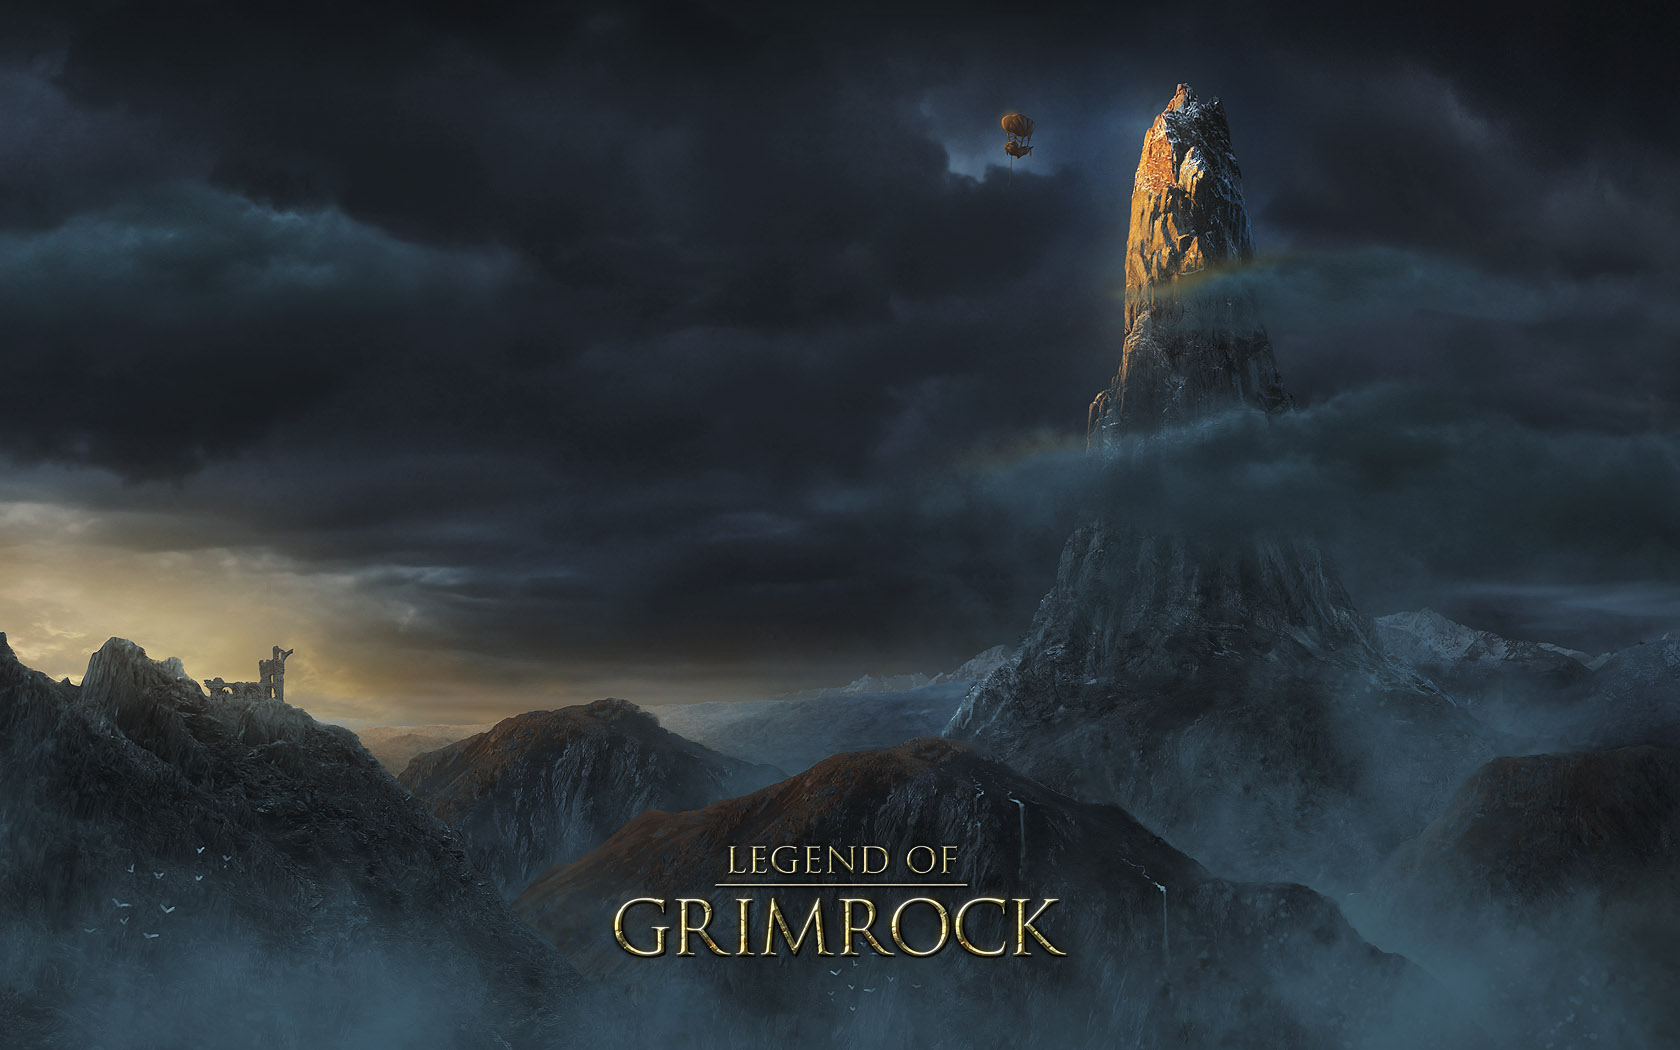 legend_of_grimrock_1650x1050_mountain_wallpaper